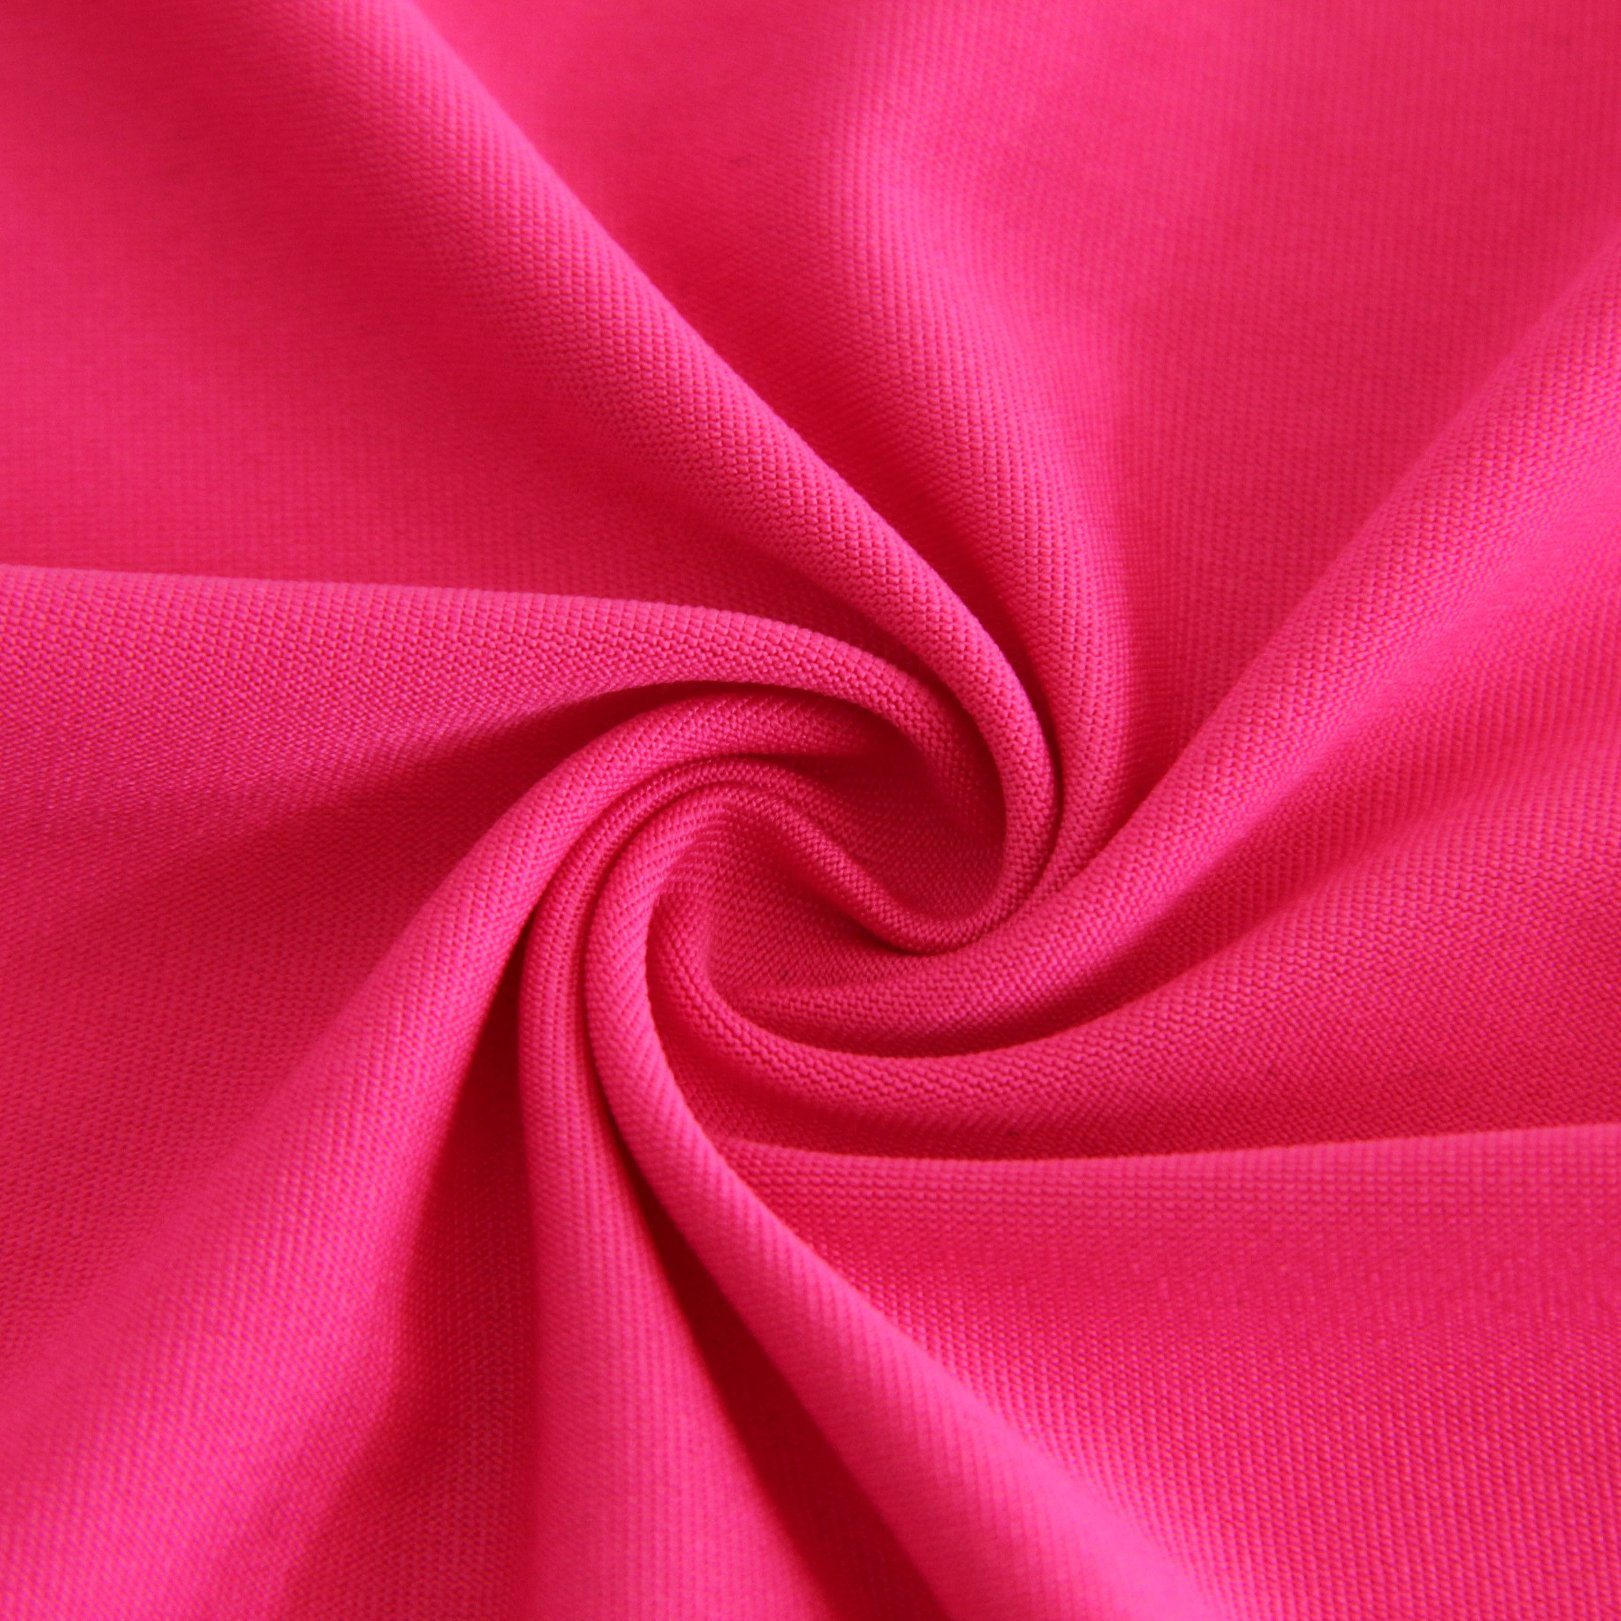 Polyester with Spandex Knit Fabric for T-Shirt/Sportswear/Gymwear pictures & photos